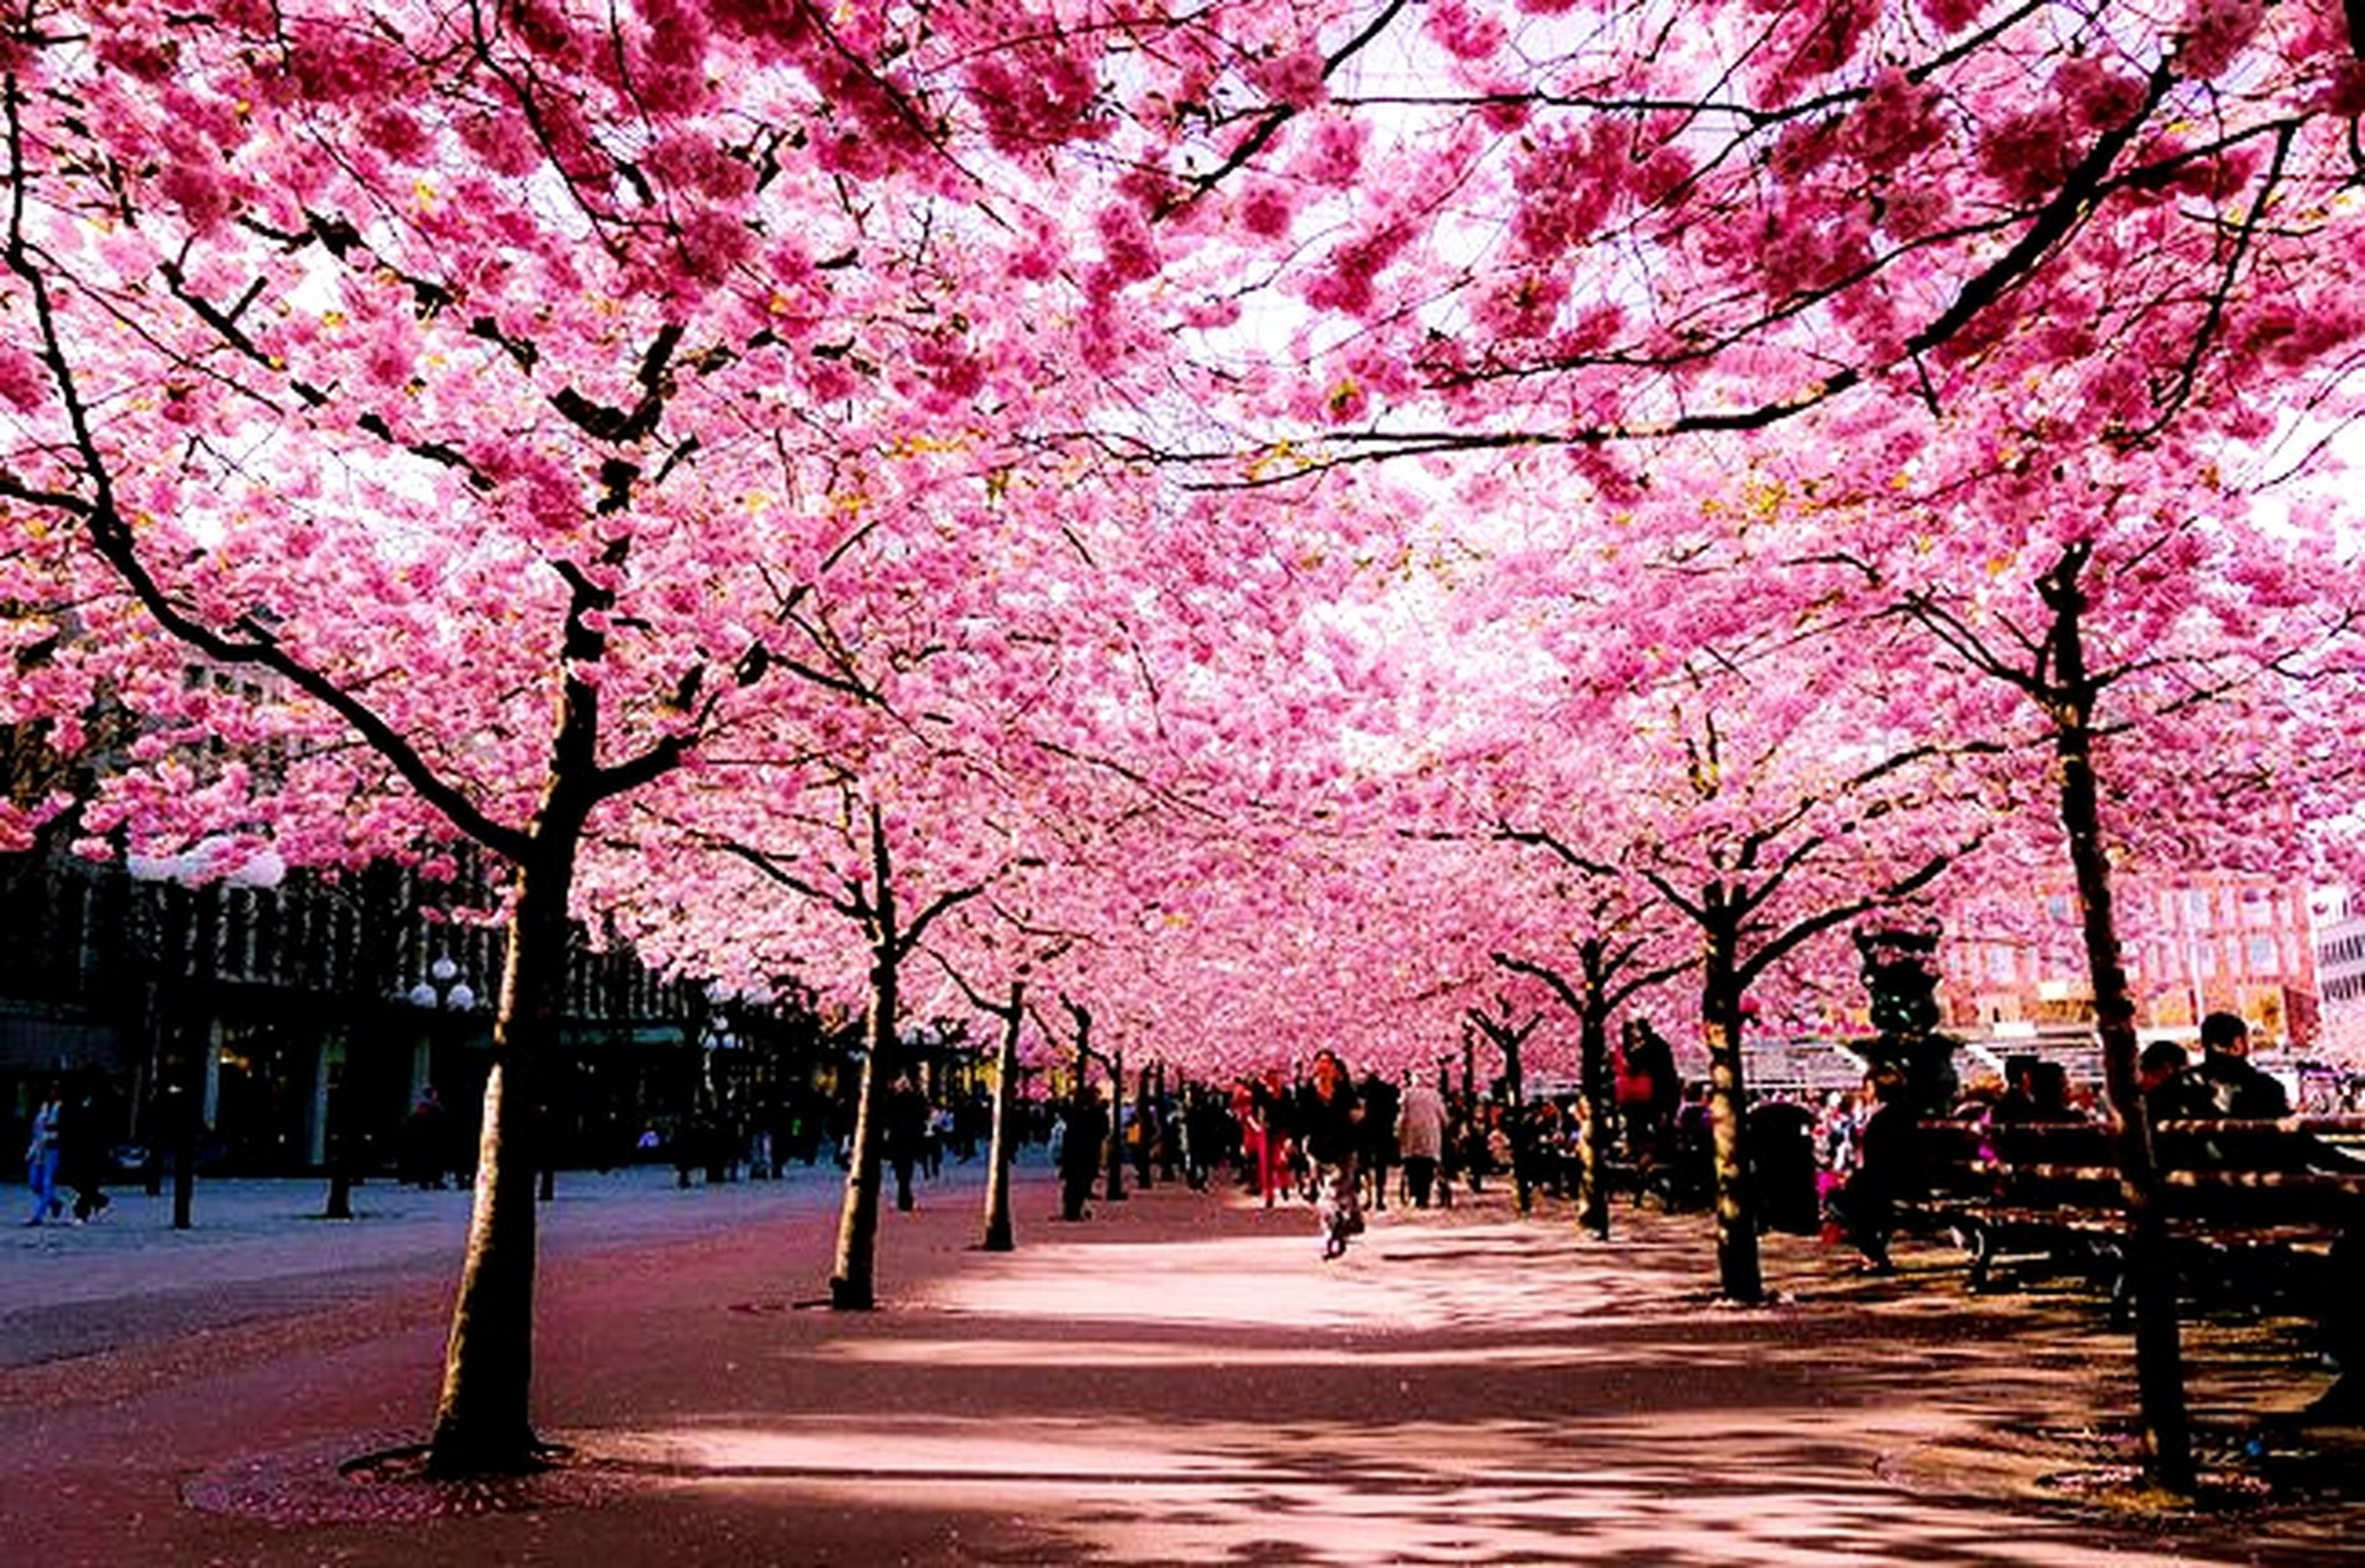 tree, branch, flower, treelined, pink color, growth, the way forward, cherry blossom, street, nature, park - man made space, incidental people, city, beauty in nature, blossom, transportation, road, footpath, large group of people